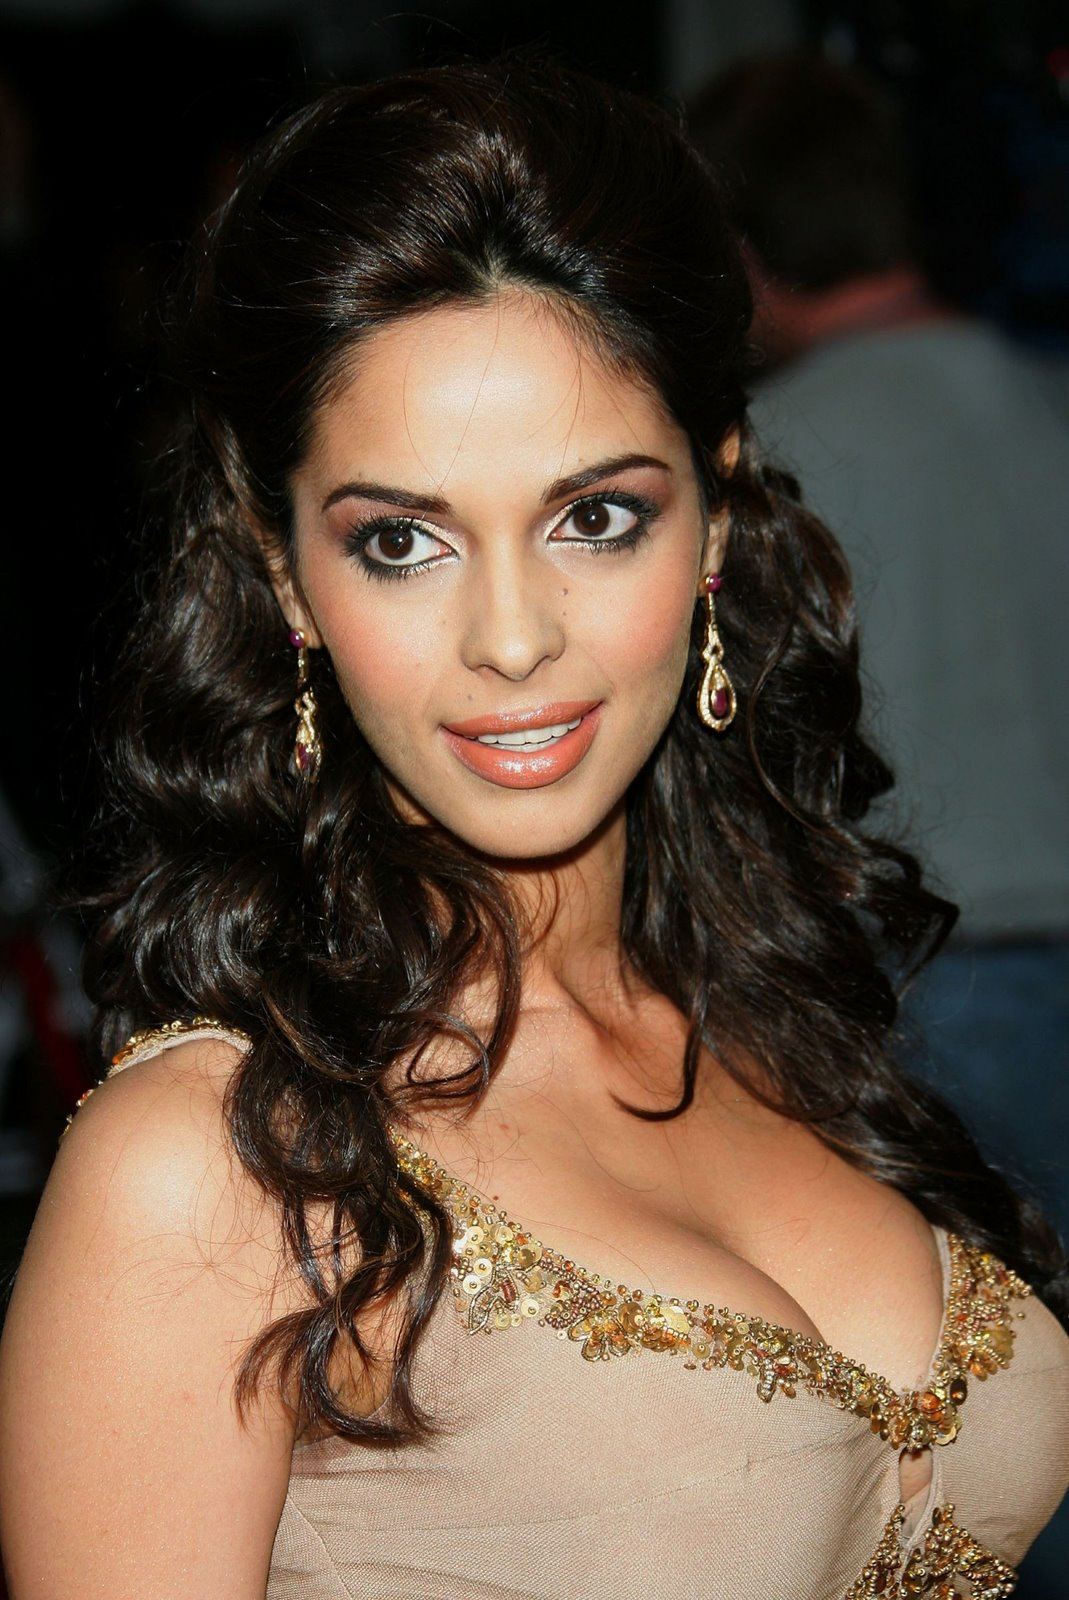 Mallika Sherawat Hot Boob cleavage and Navel Show